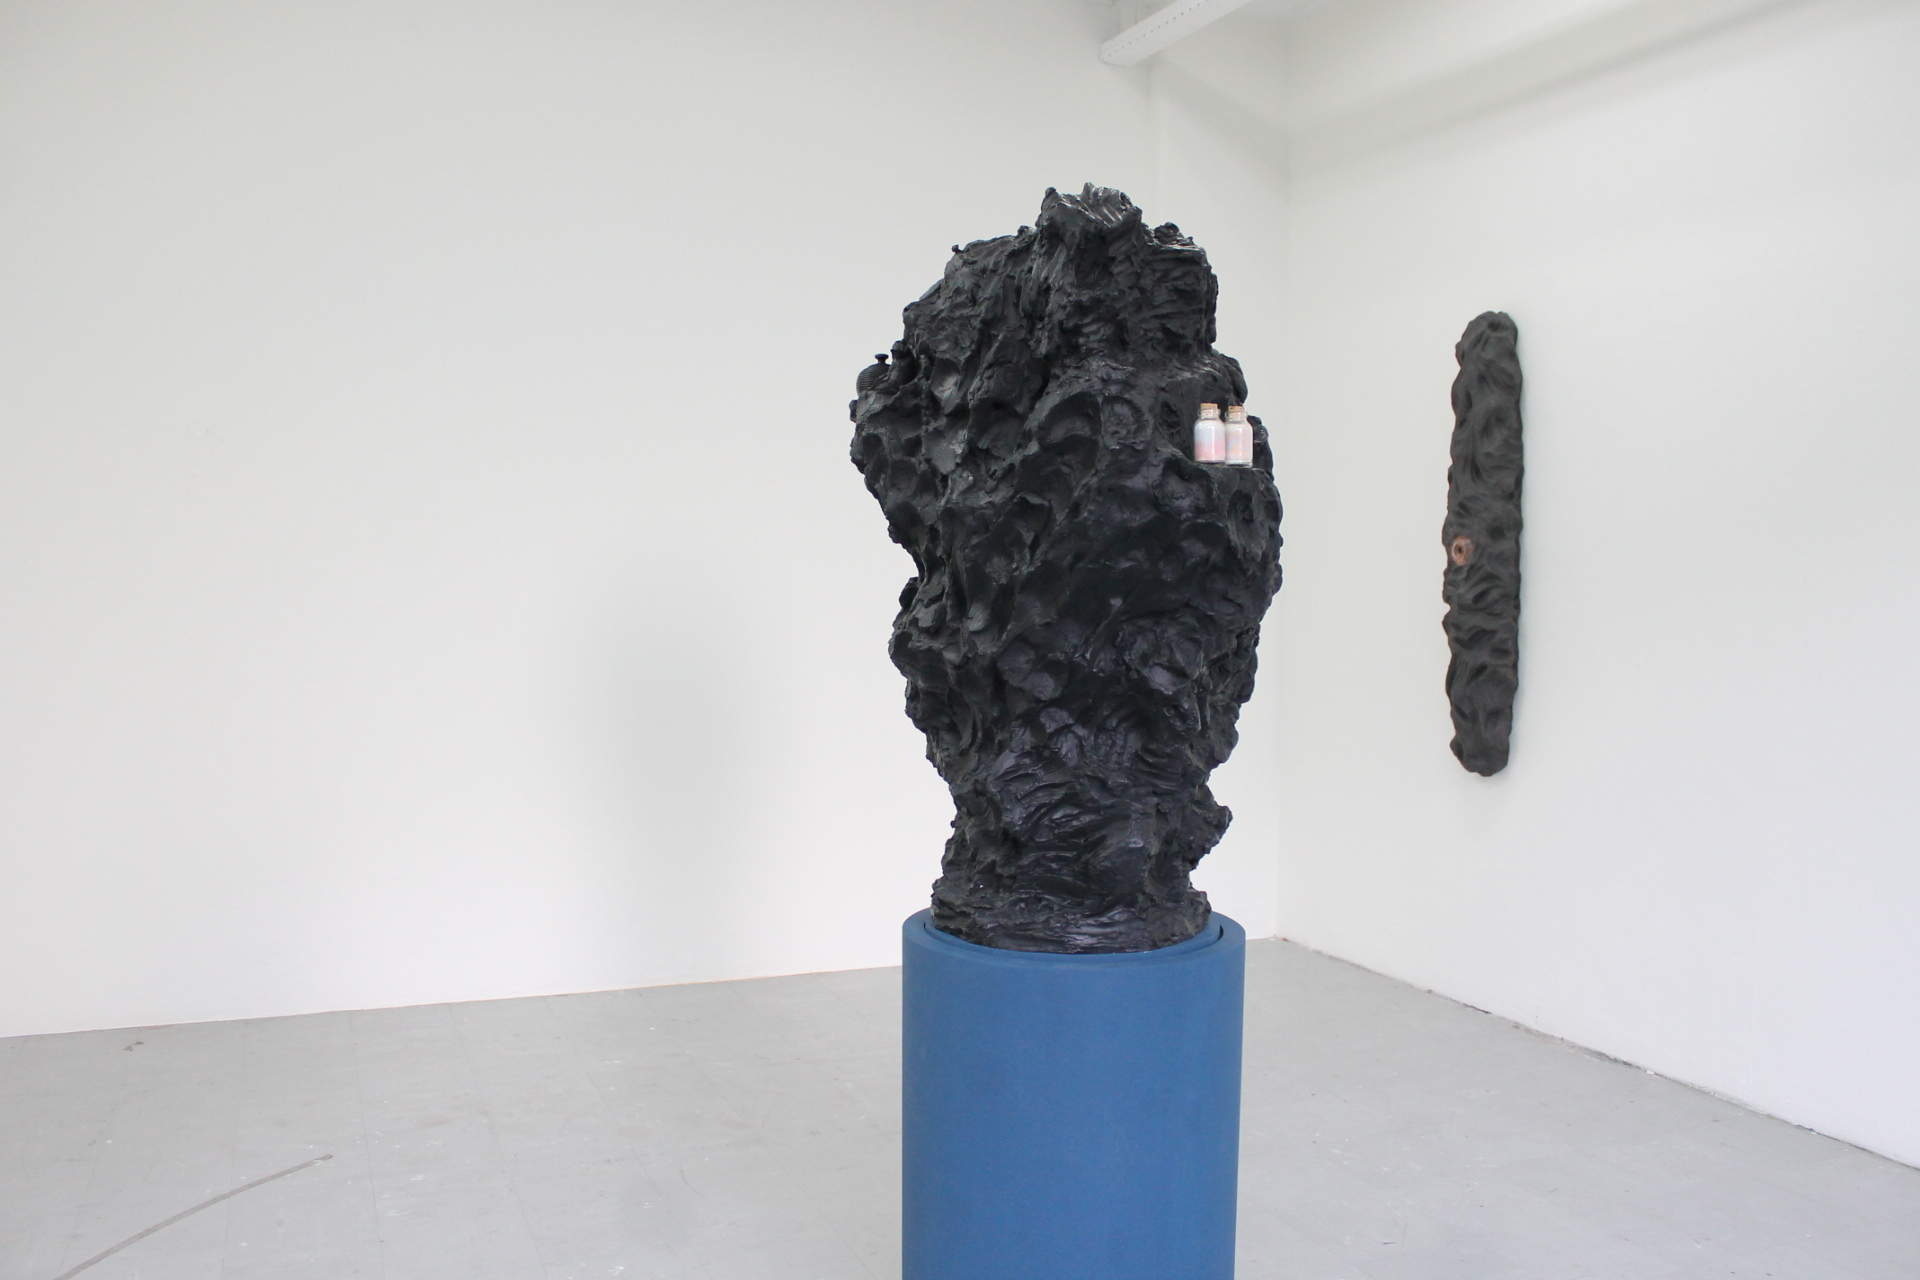 Philip Vervaet - Hollow Earth sculpture Show (2014) -